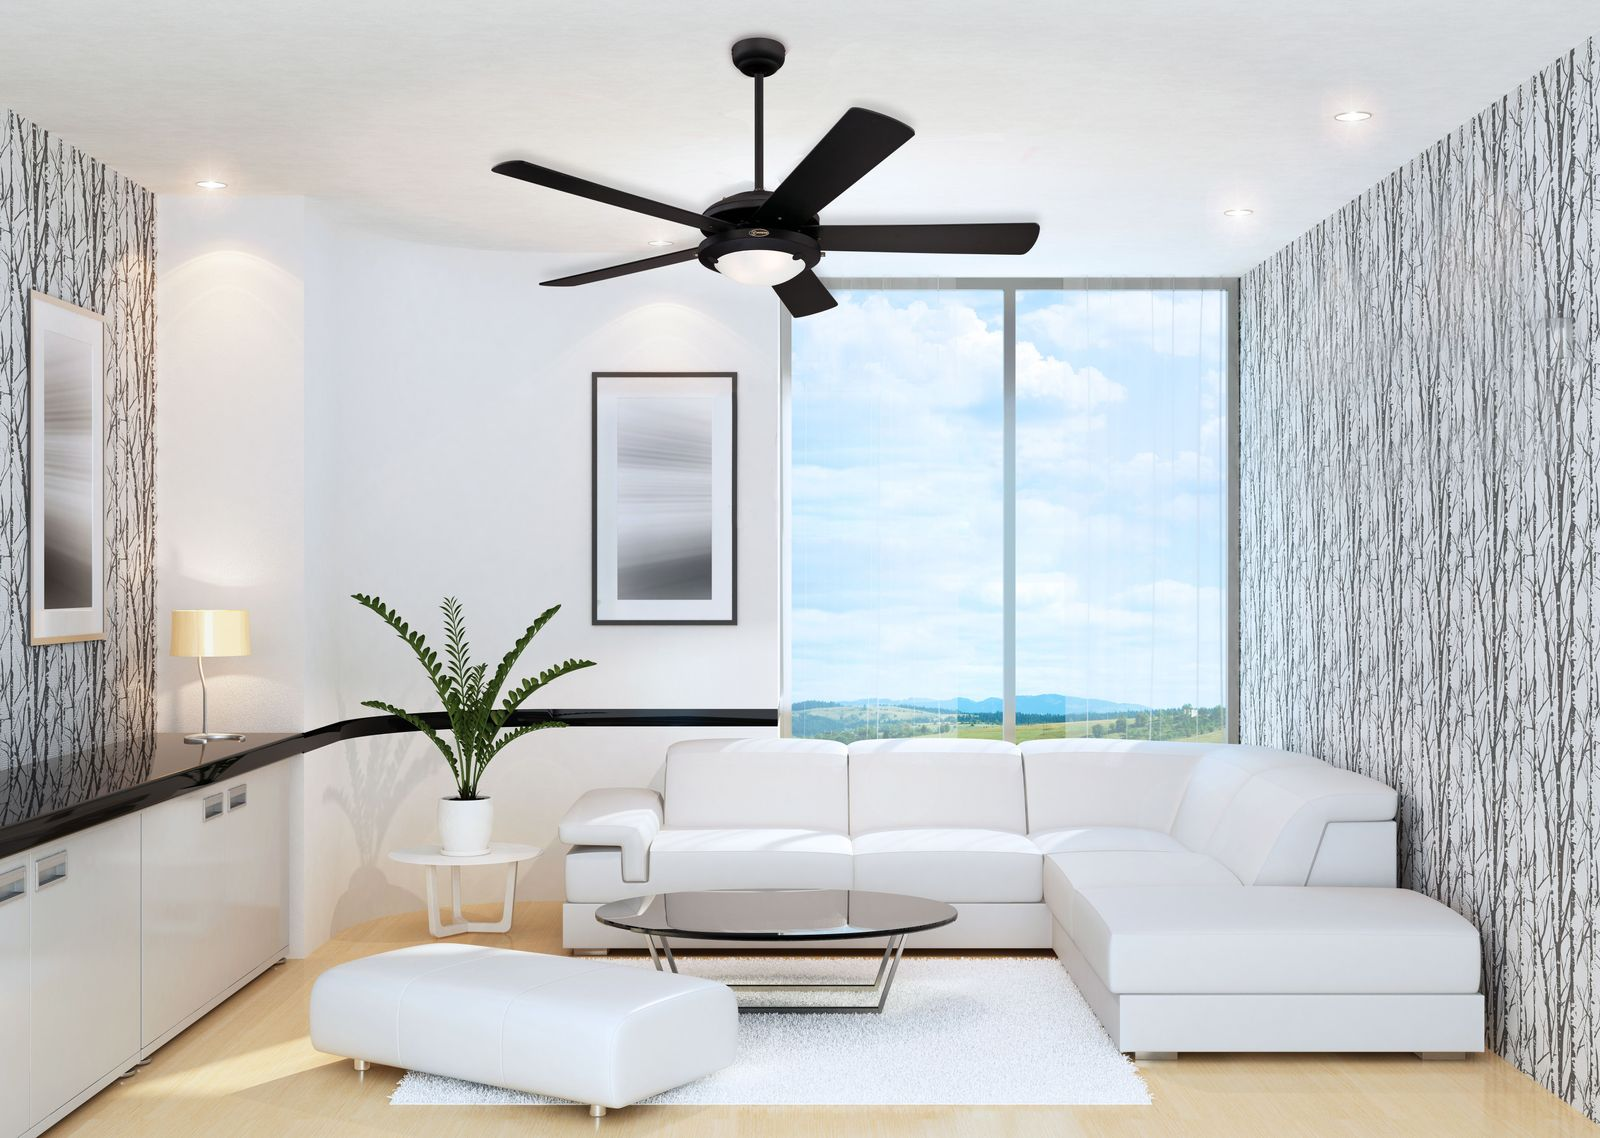 Ceiling fan comet black with light 132cm 52 ceiling fans for ceiling fan comet black with light 132cm 52quot aloadofball Gallery